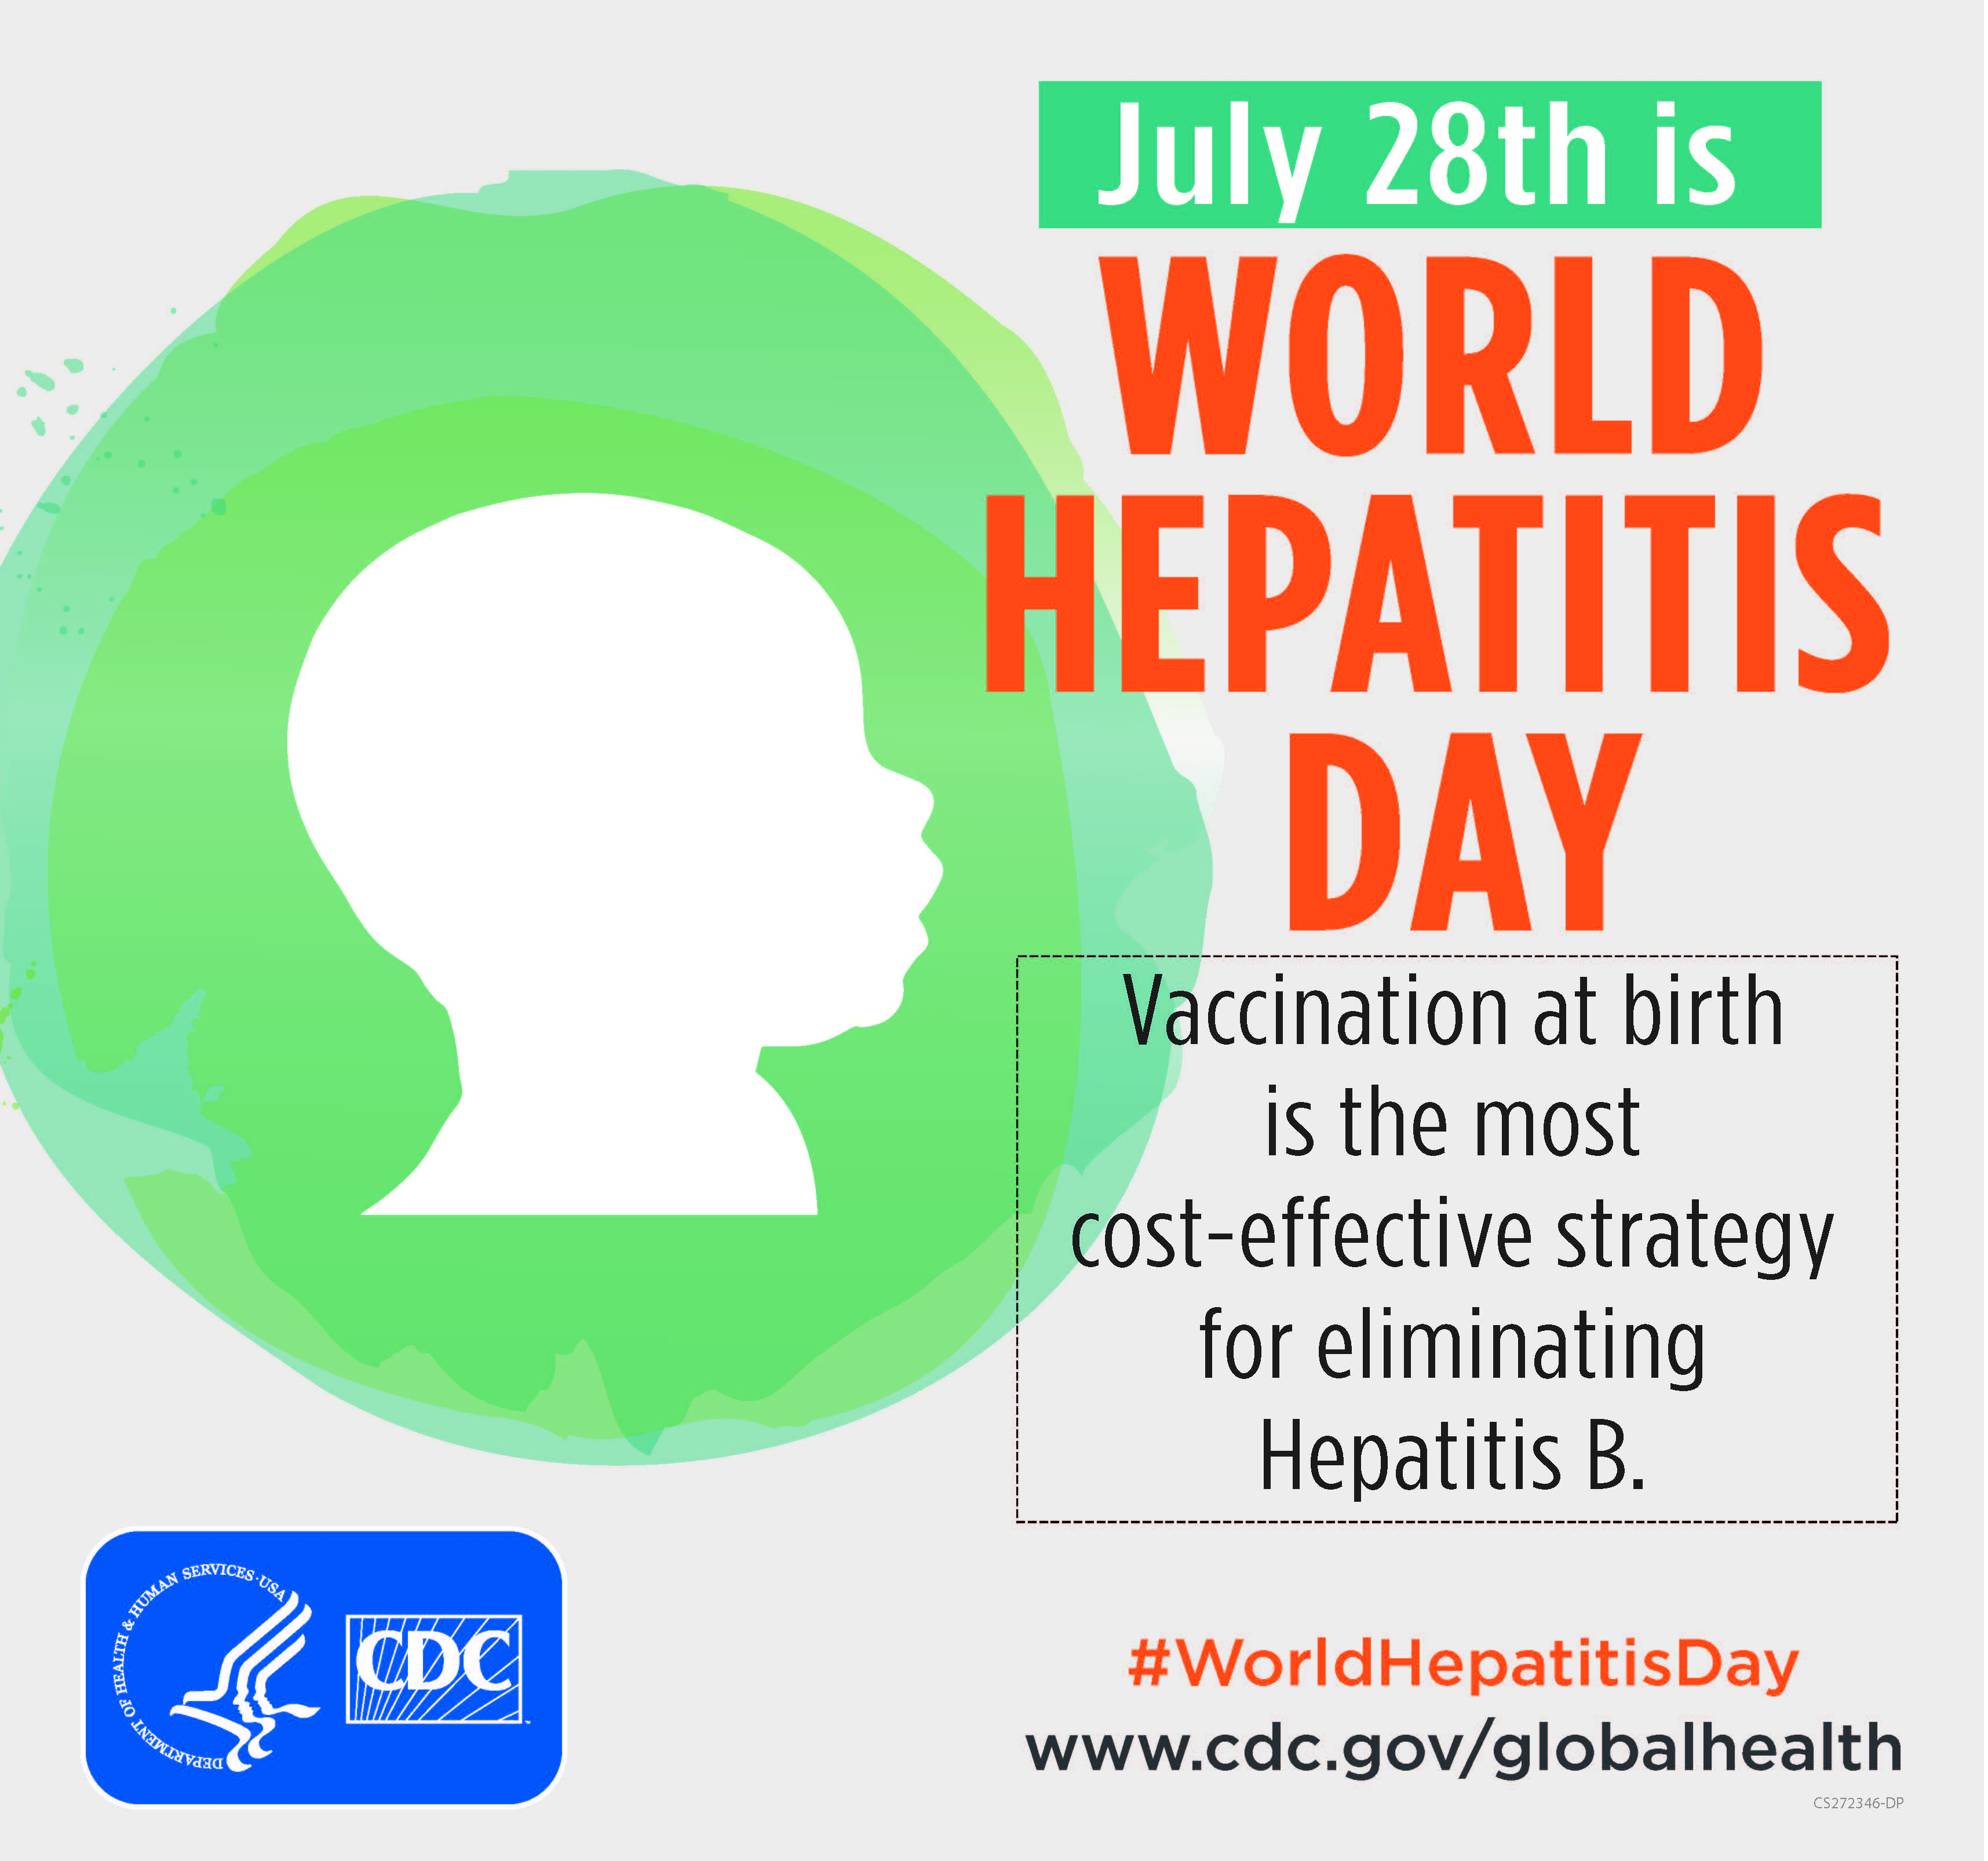 July 28th is World Hepatitis Day